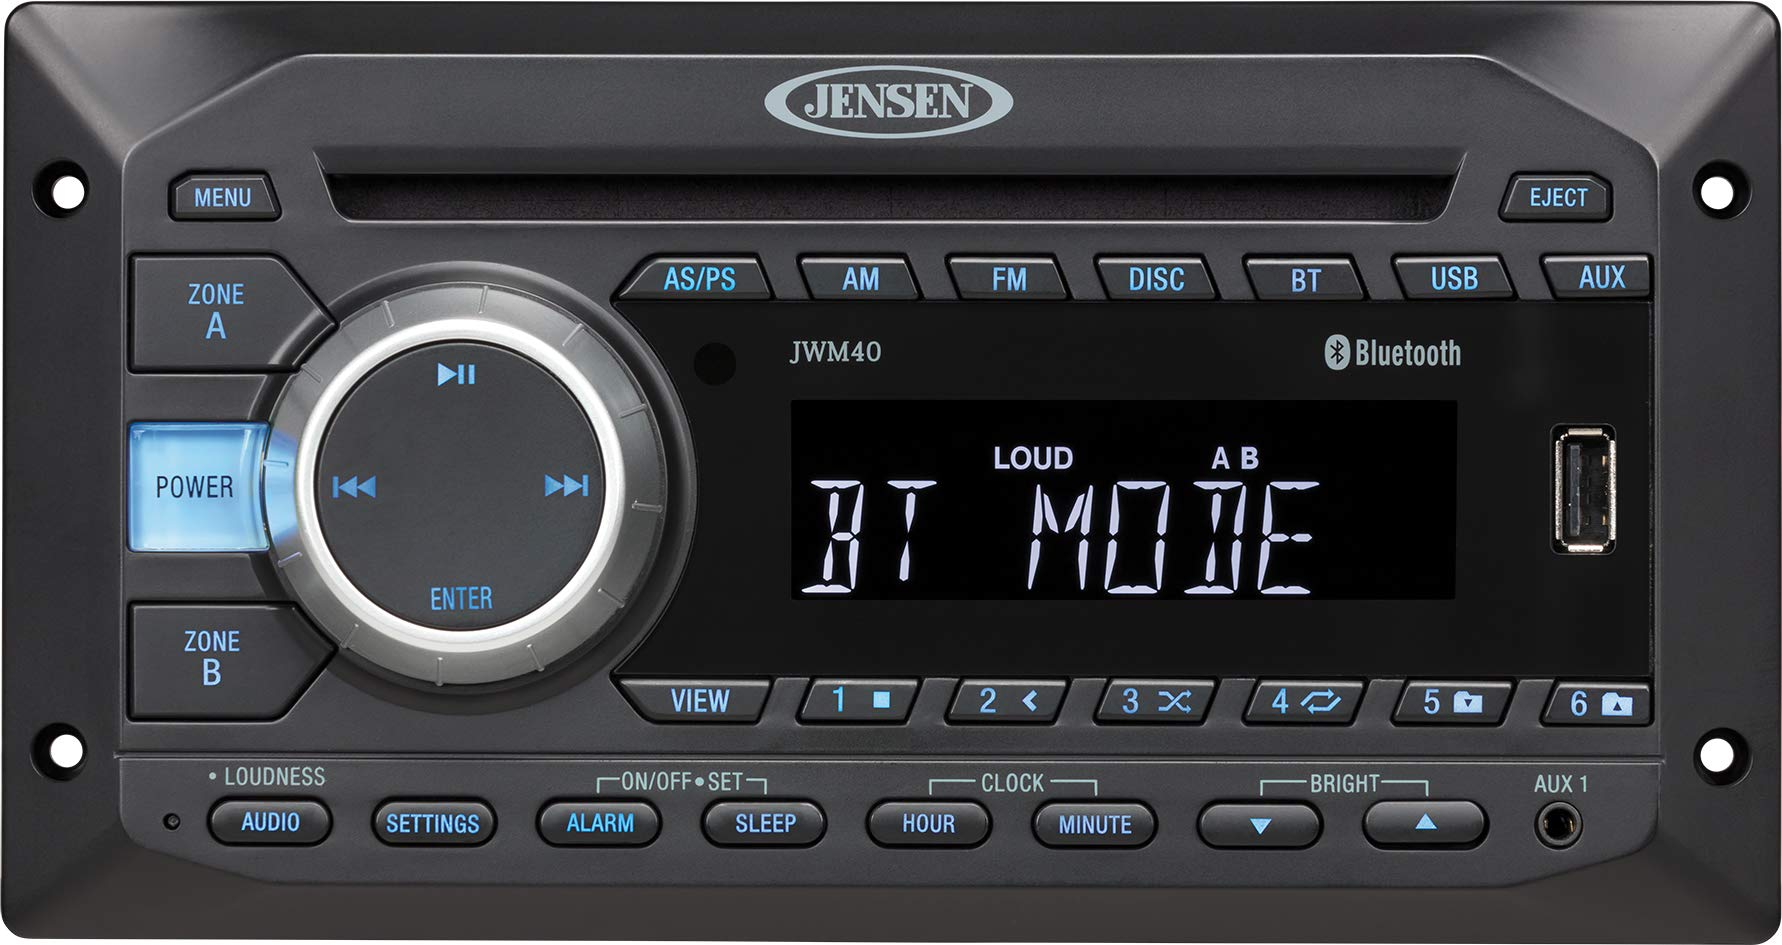 Jensen JWM40 AM/FM|DVD|CD|USB|AUX| Bluetooth (A2DP & AVRCP) Wallmount Stereo, 2-Speaker Zone / 4 Speakers, Plays: CD, CD-R, CD-RW, DVD, DVD+RW, DVD-RW, DVD-Video, MPEG-4, VCD, JPEG, CD-DA, MP3, WMA